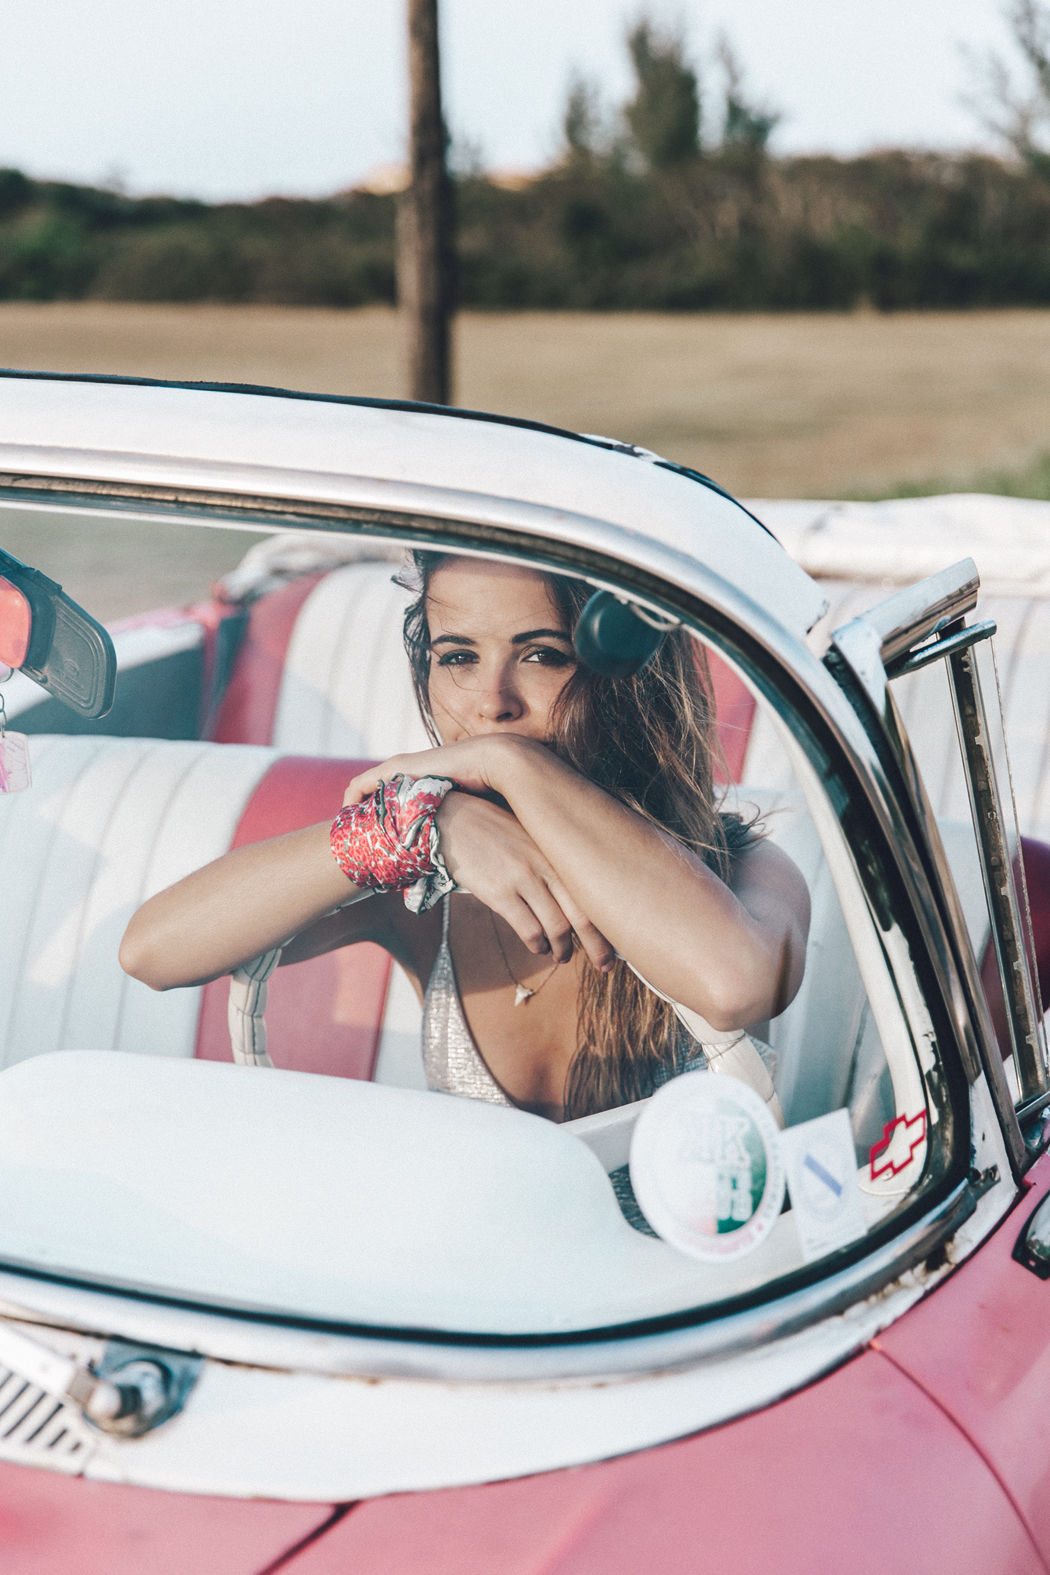 Cuba-Varadero-Vintage_Car-Silver_Dress-Floral_Scarf-Isabel_Marant_Sandals-Outfit-COllage_On_The_Road-66